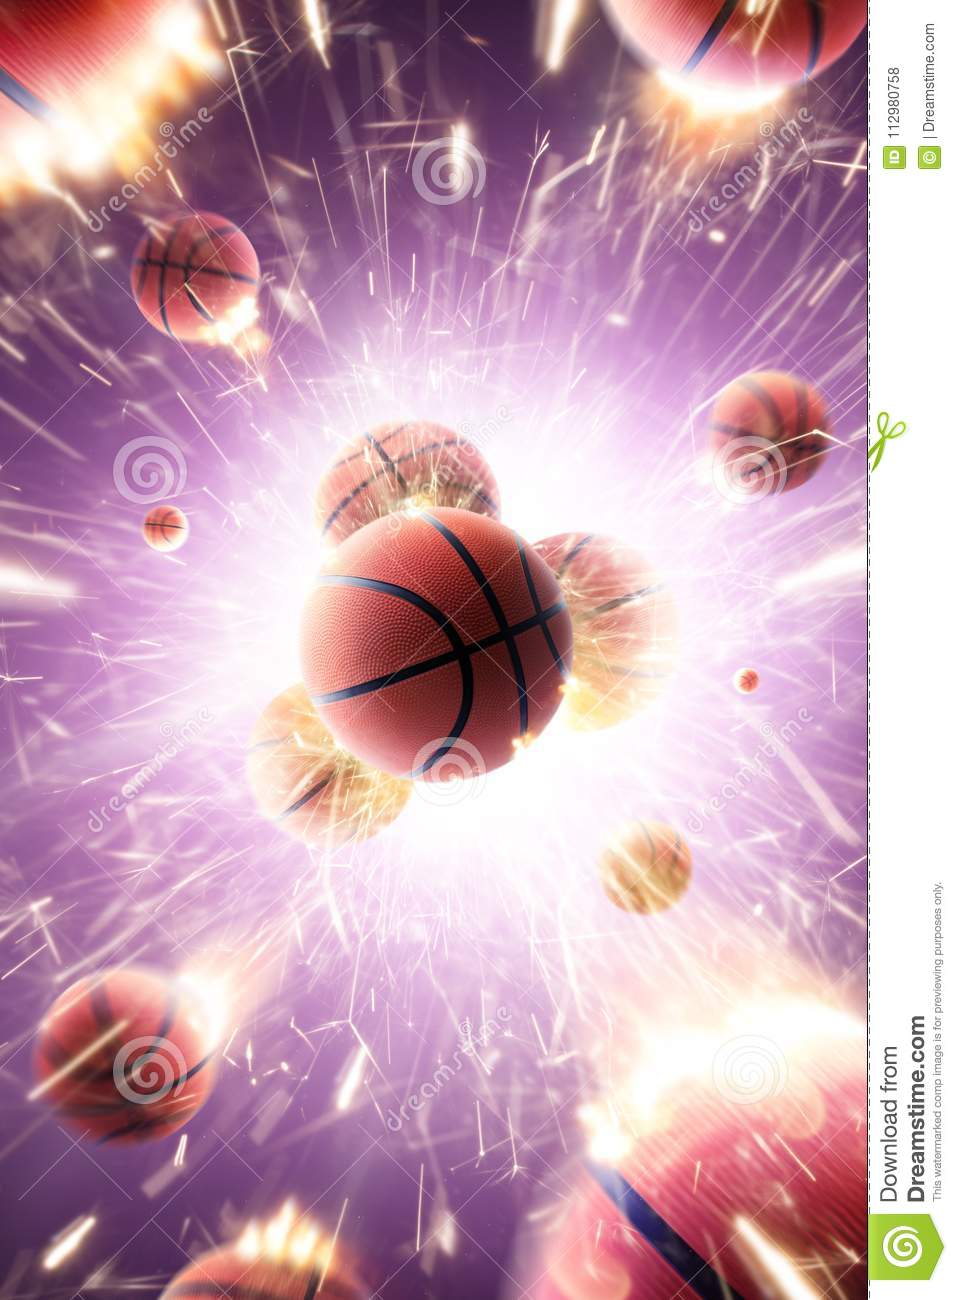 Basketball balls with fire sparks in action